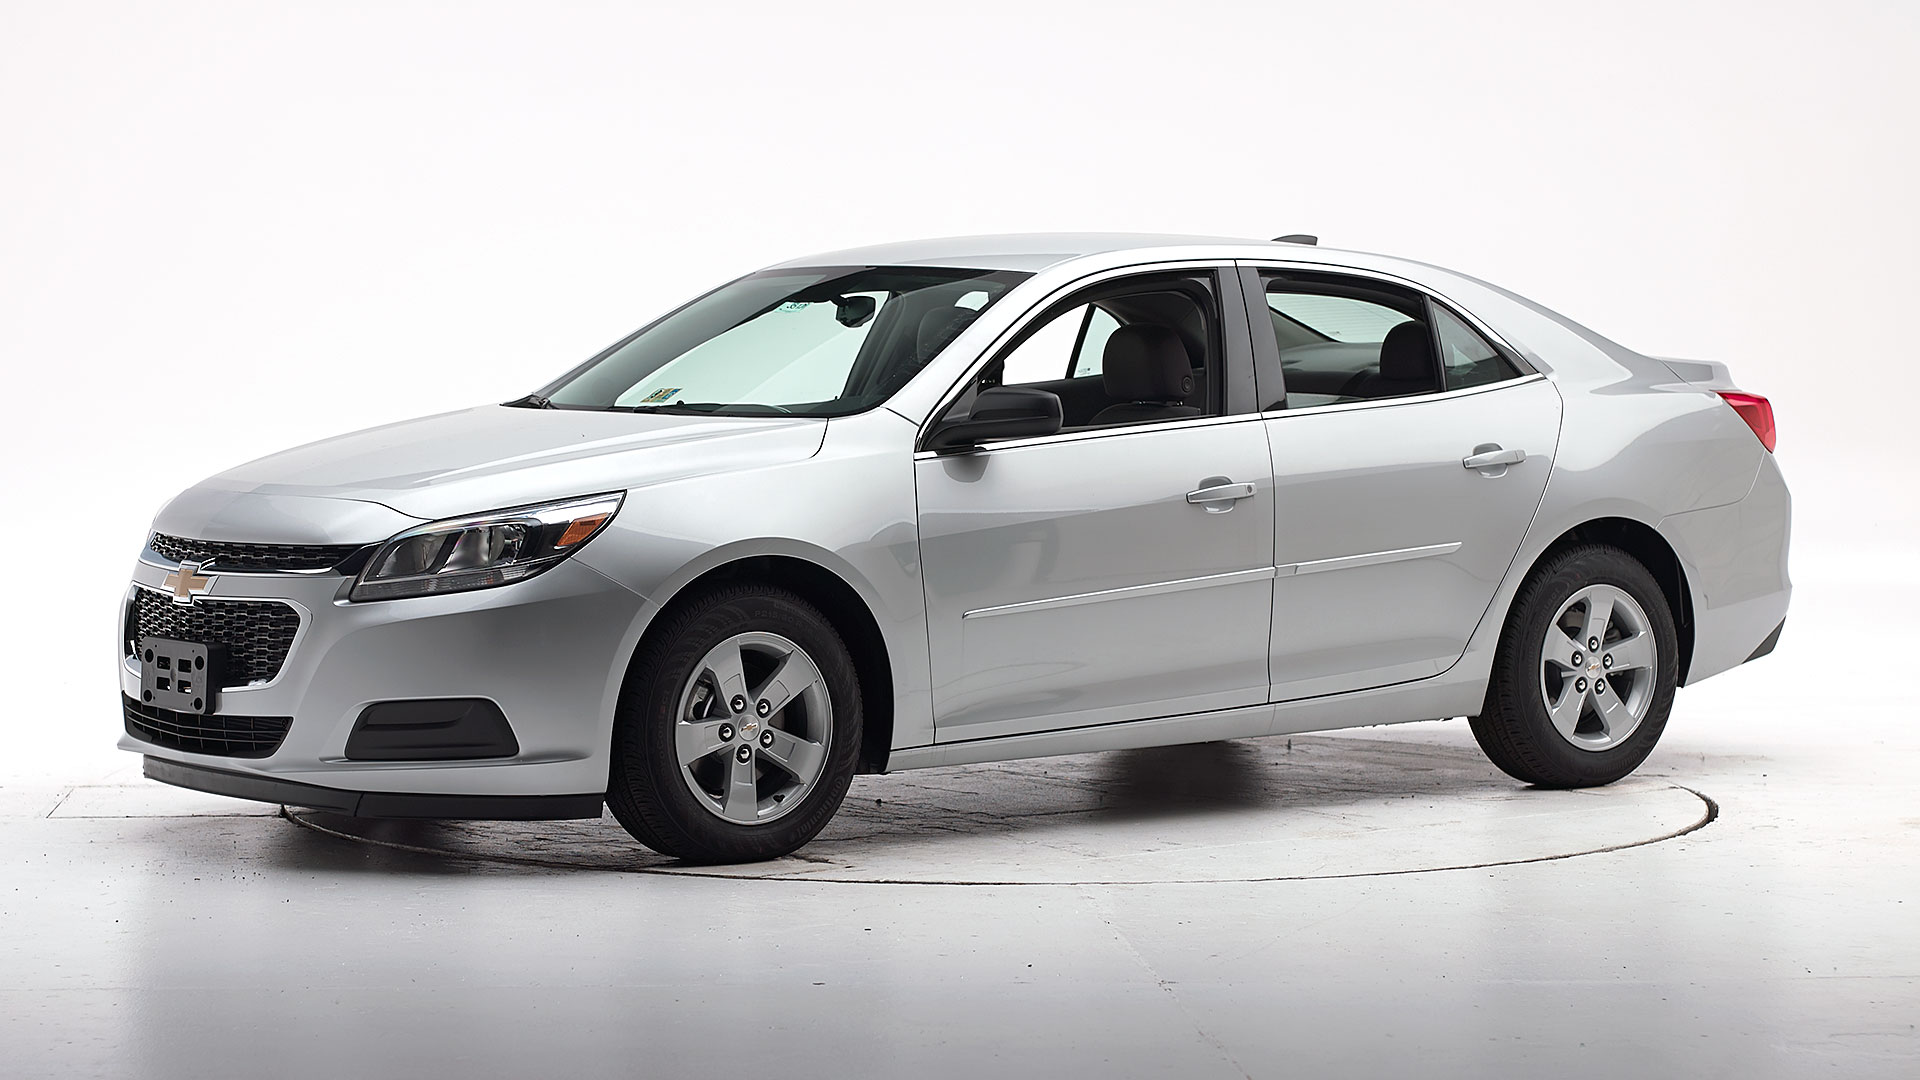 2016 Chevrolet Malibu Limited 4-door sedan